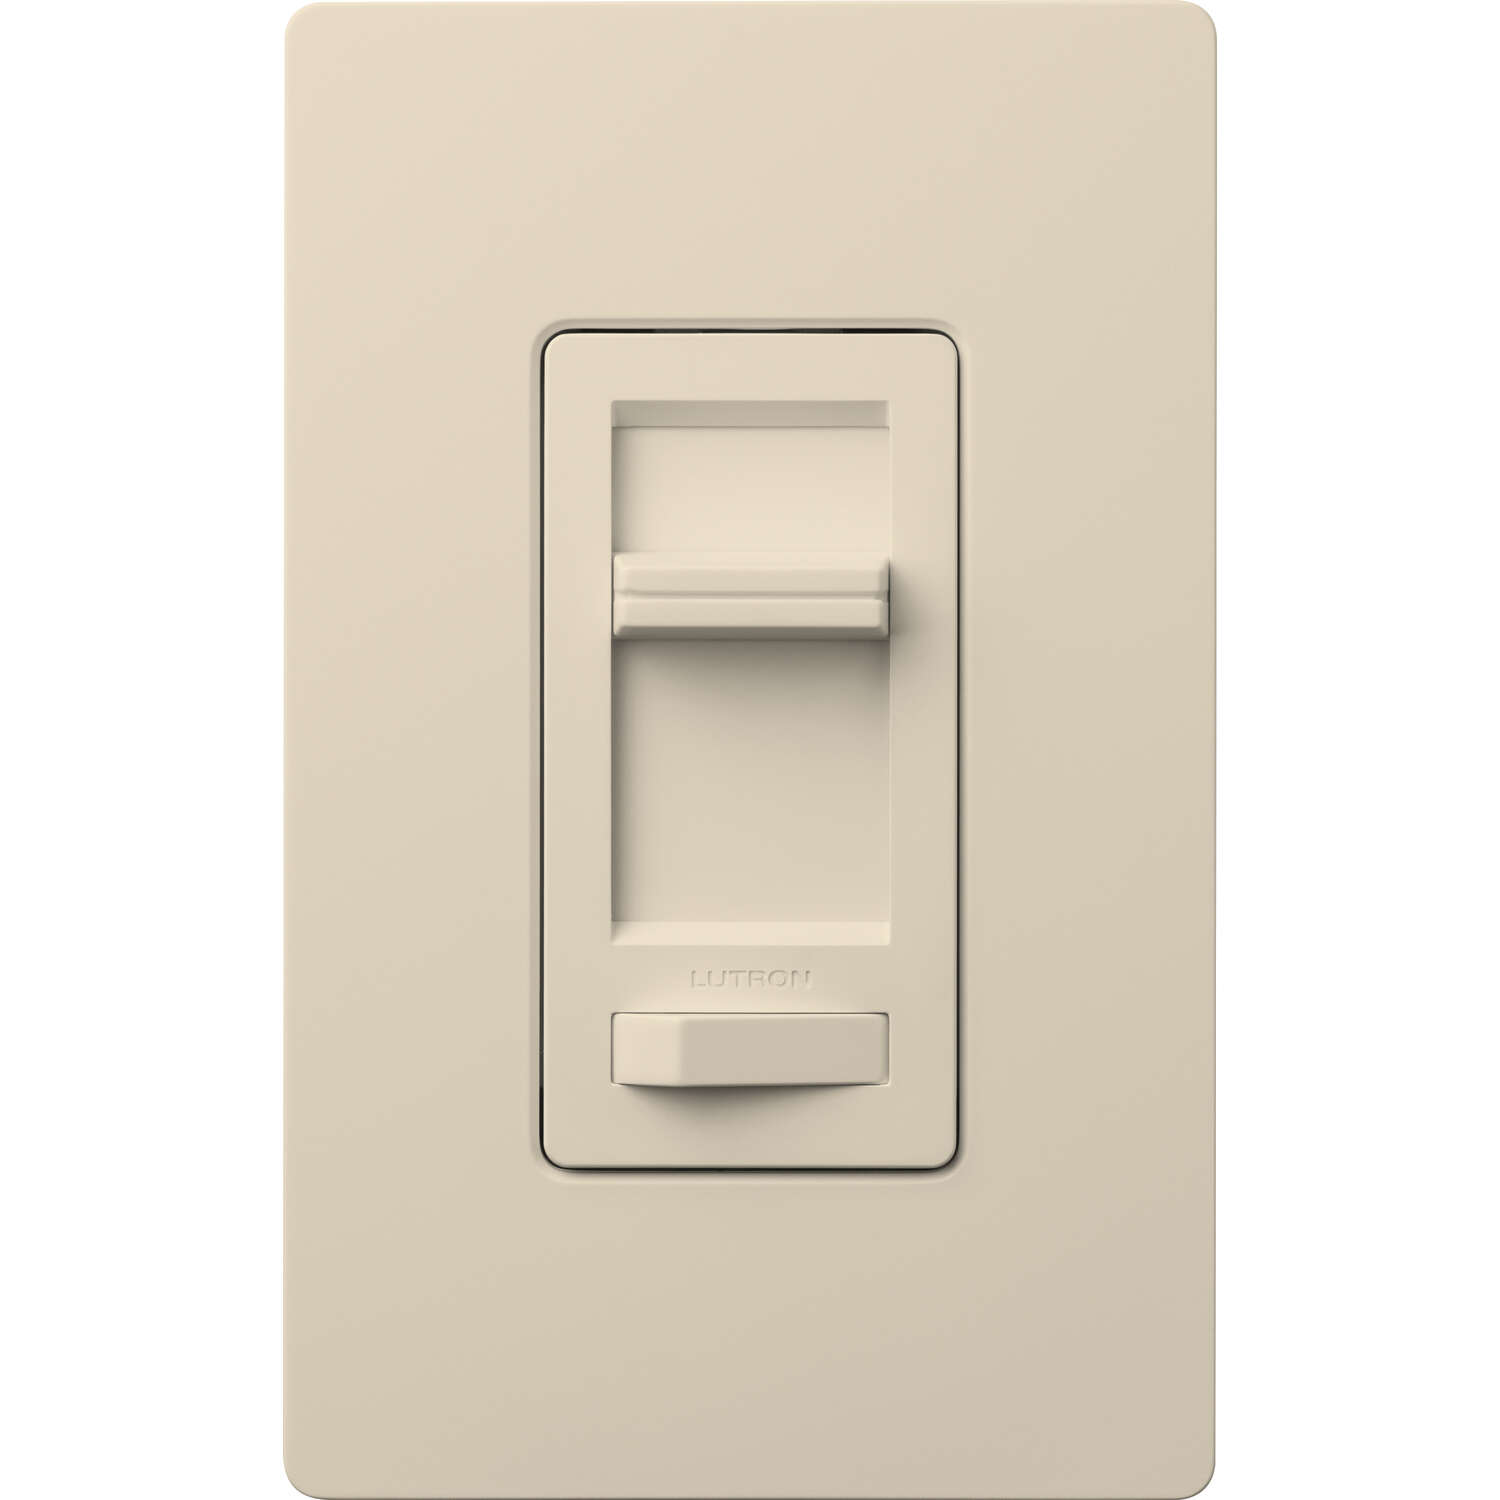 Lutron  Lumea  Light Almond  150W for CFL and LED / 600W for incandescent and halogen watt 3-Way  Di